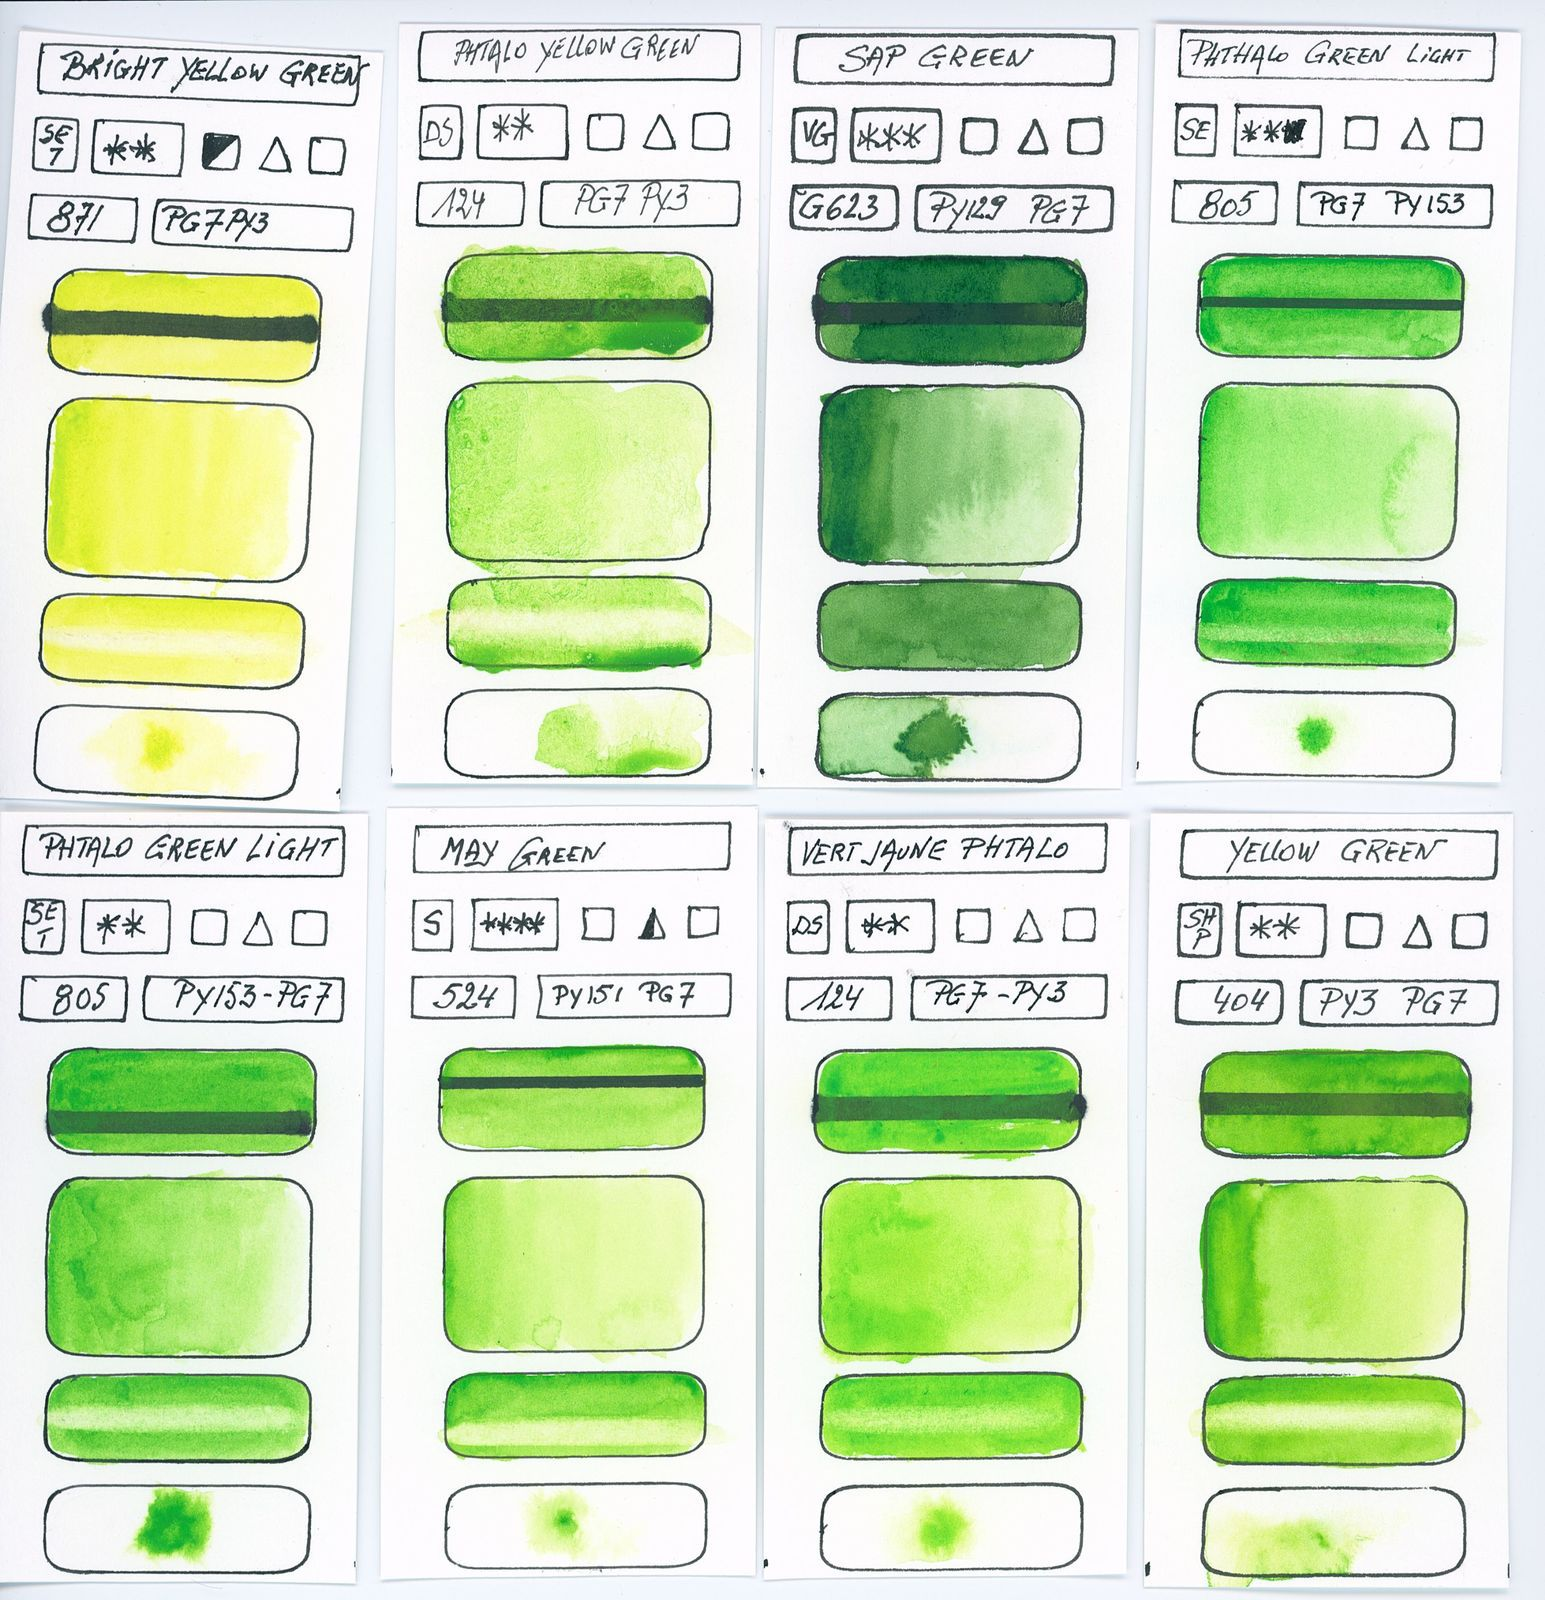 Swatches of Green watercolor paints from different manufacturer made with pigment P7